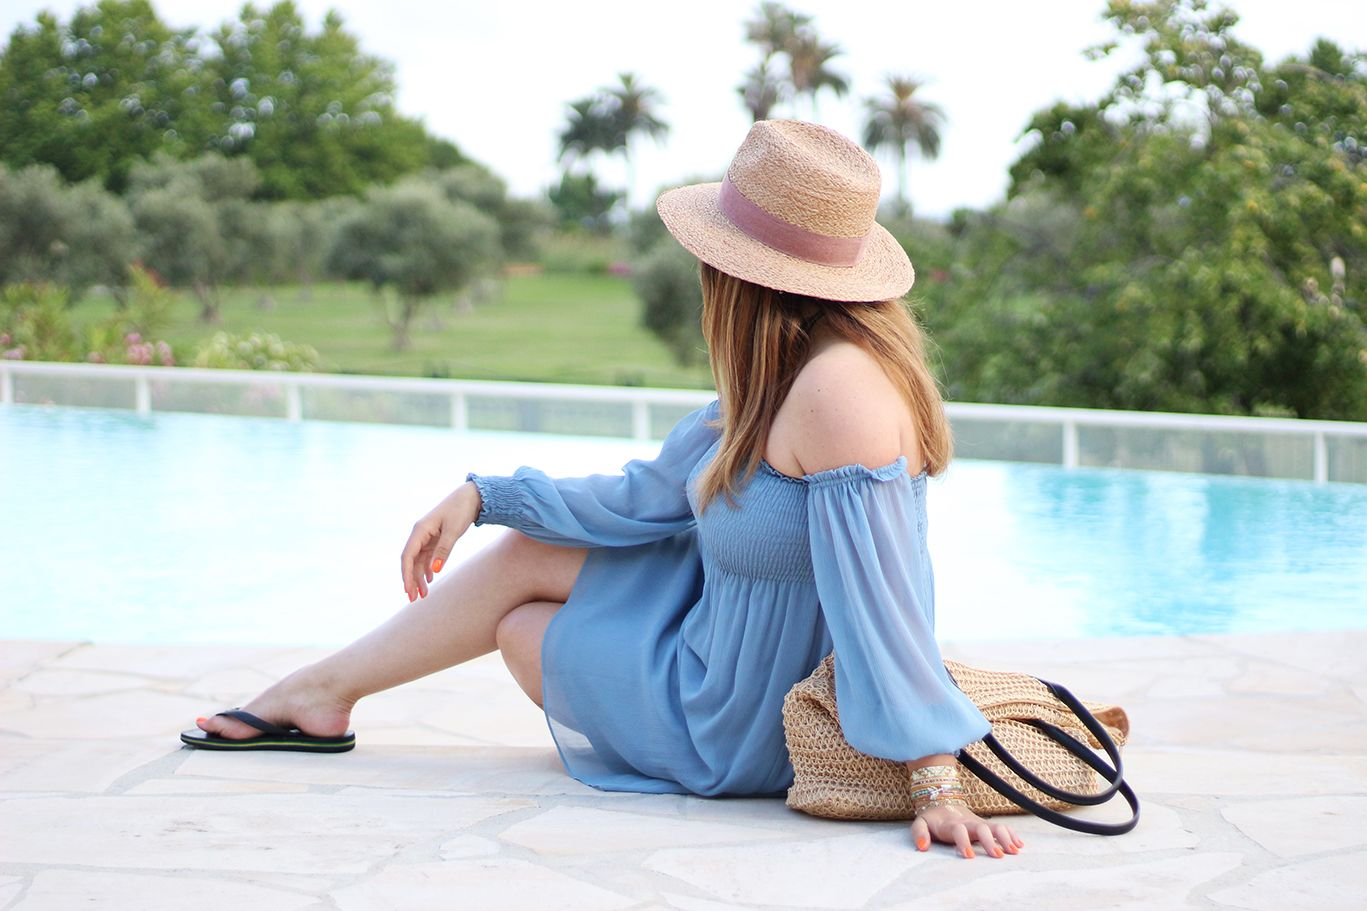 pool party, robe bleue zara, zara, robe zara, col bardot, havaianas, tong, sac plage, h&m, chapeau paille zara, chapeau paille, blog mode, blogueuse mode, hipanema, antibes,